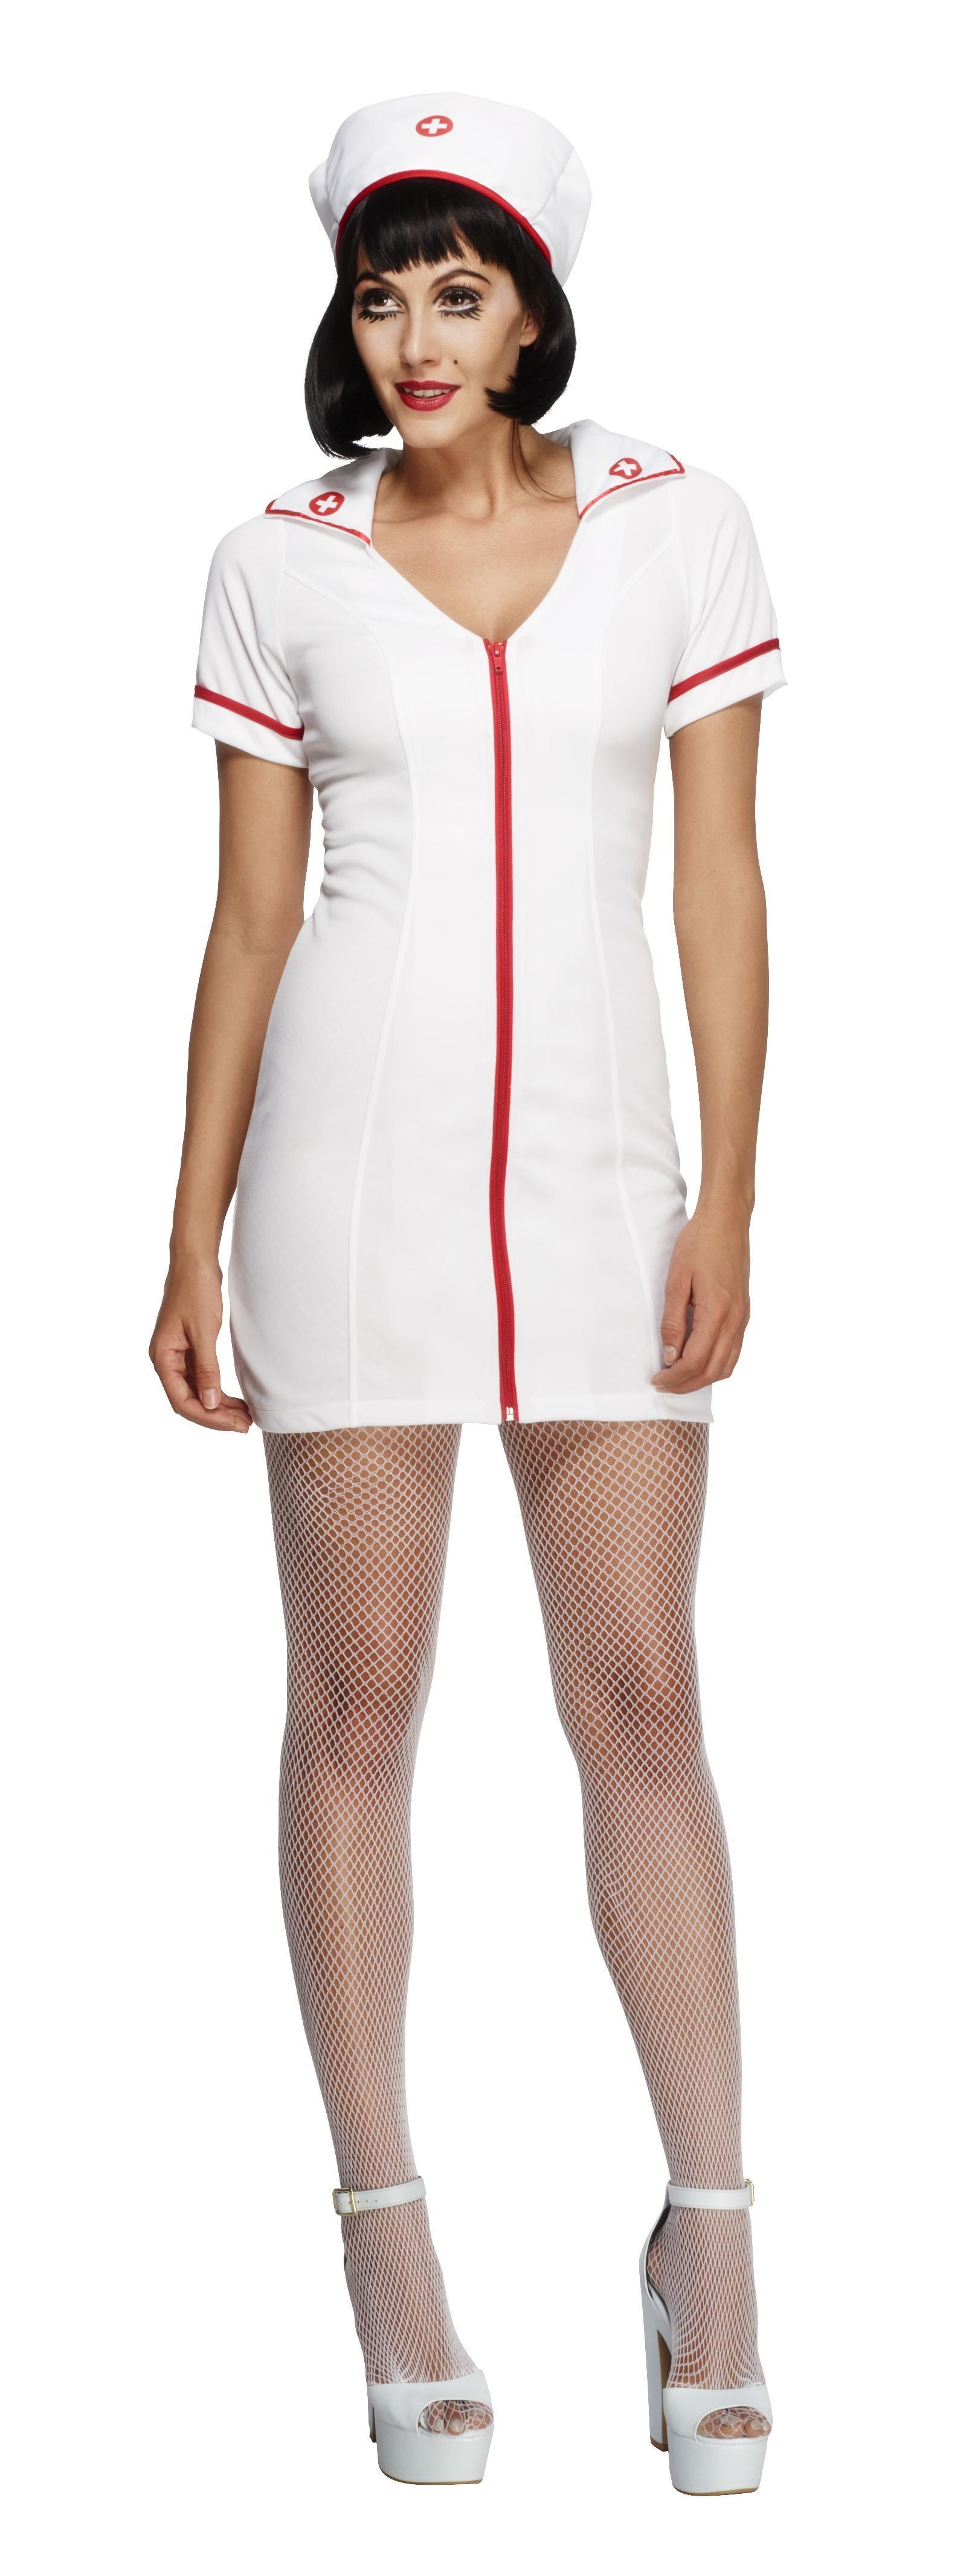 Fever No Nonsense Nurse Costume White